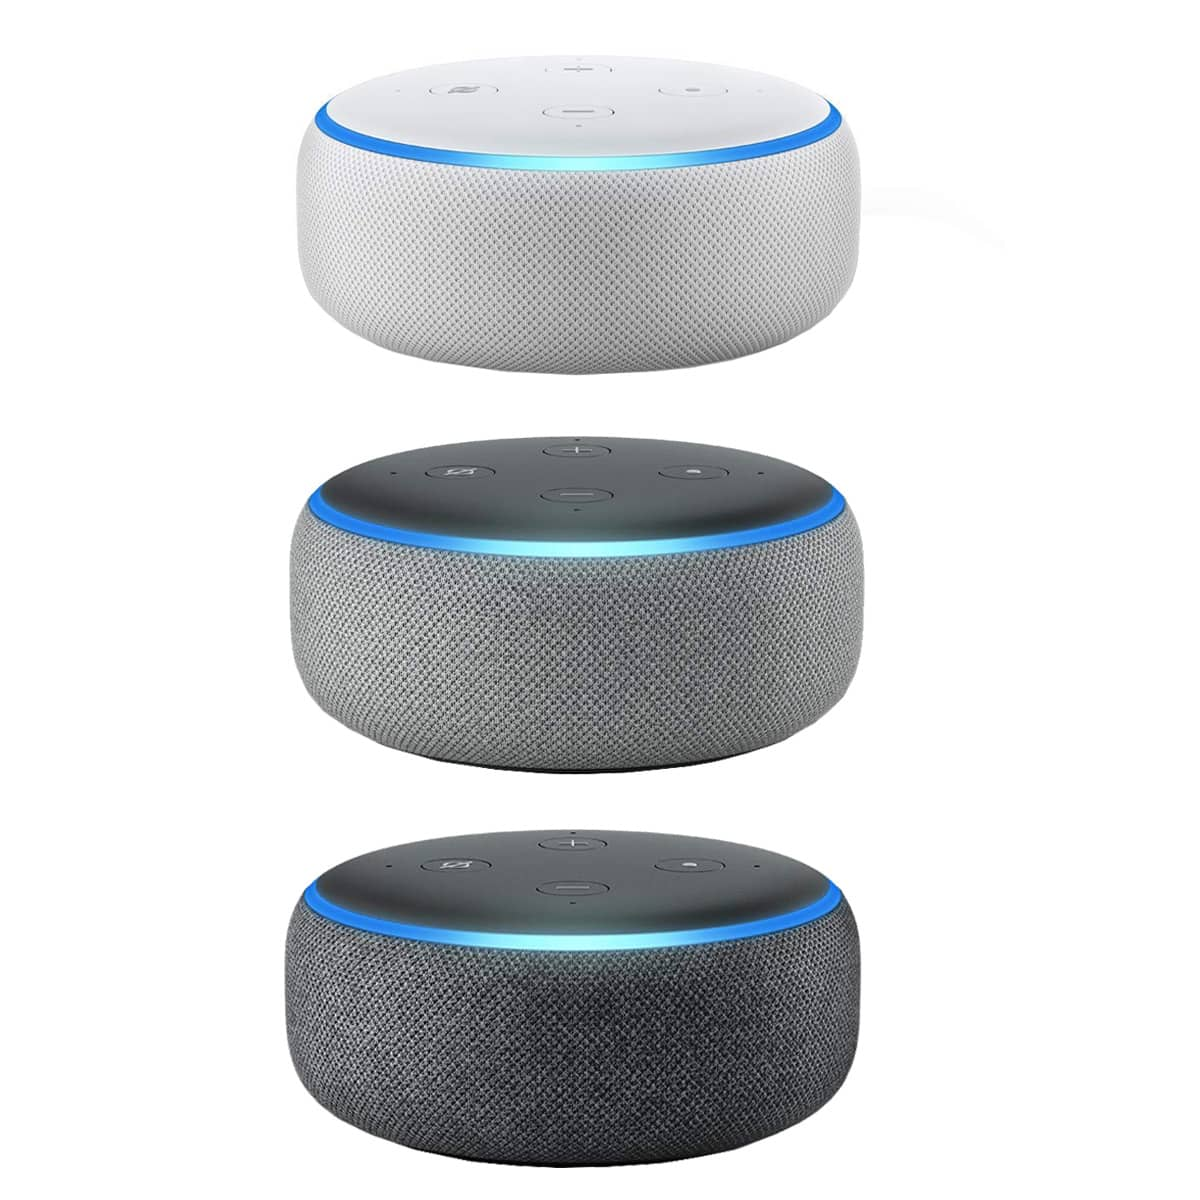 Alexa Dot Amazon Echo Dot 29 99 New And Improved Smart Speaker With Alexa